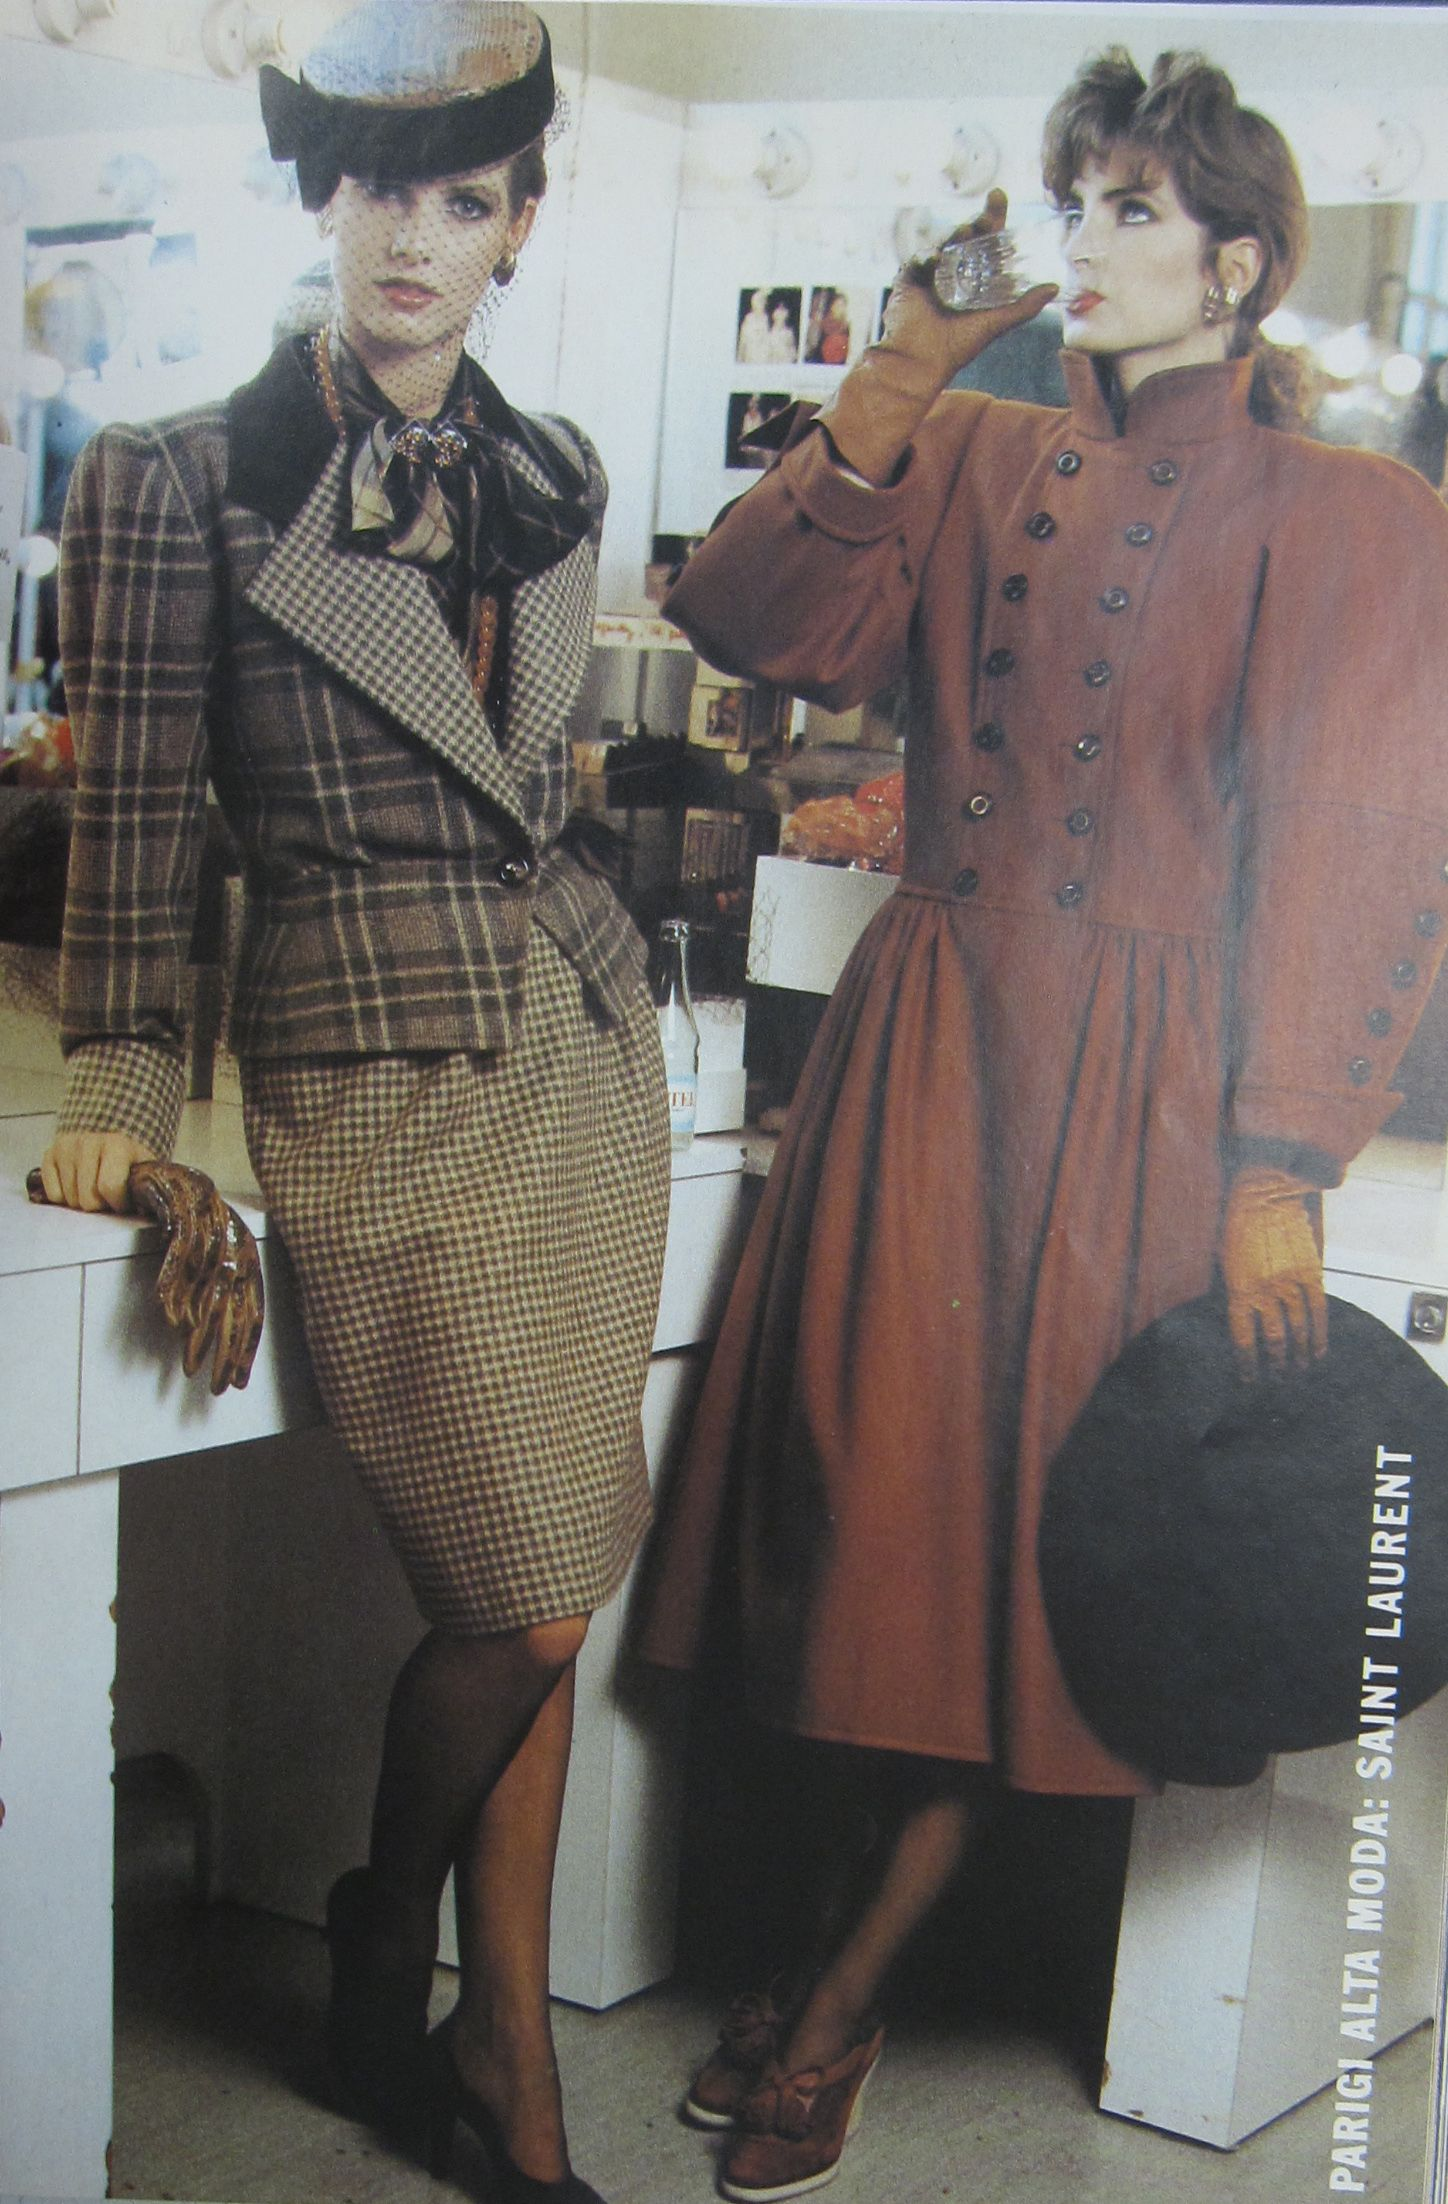 Outfits by yves saint laurent scanned from vogue italia september